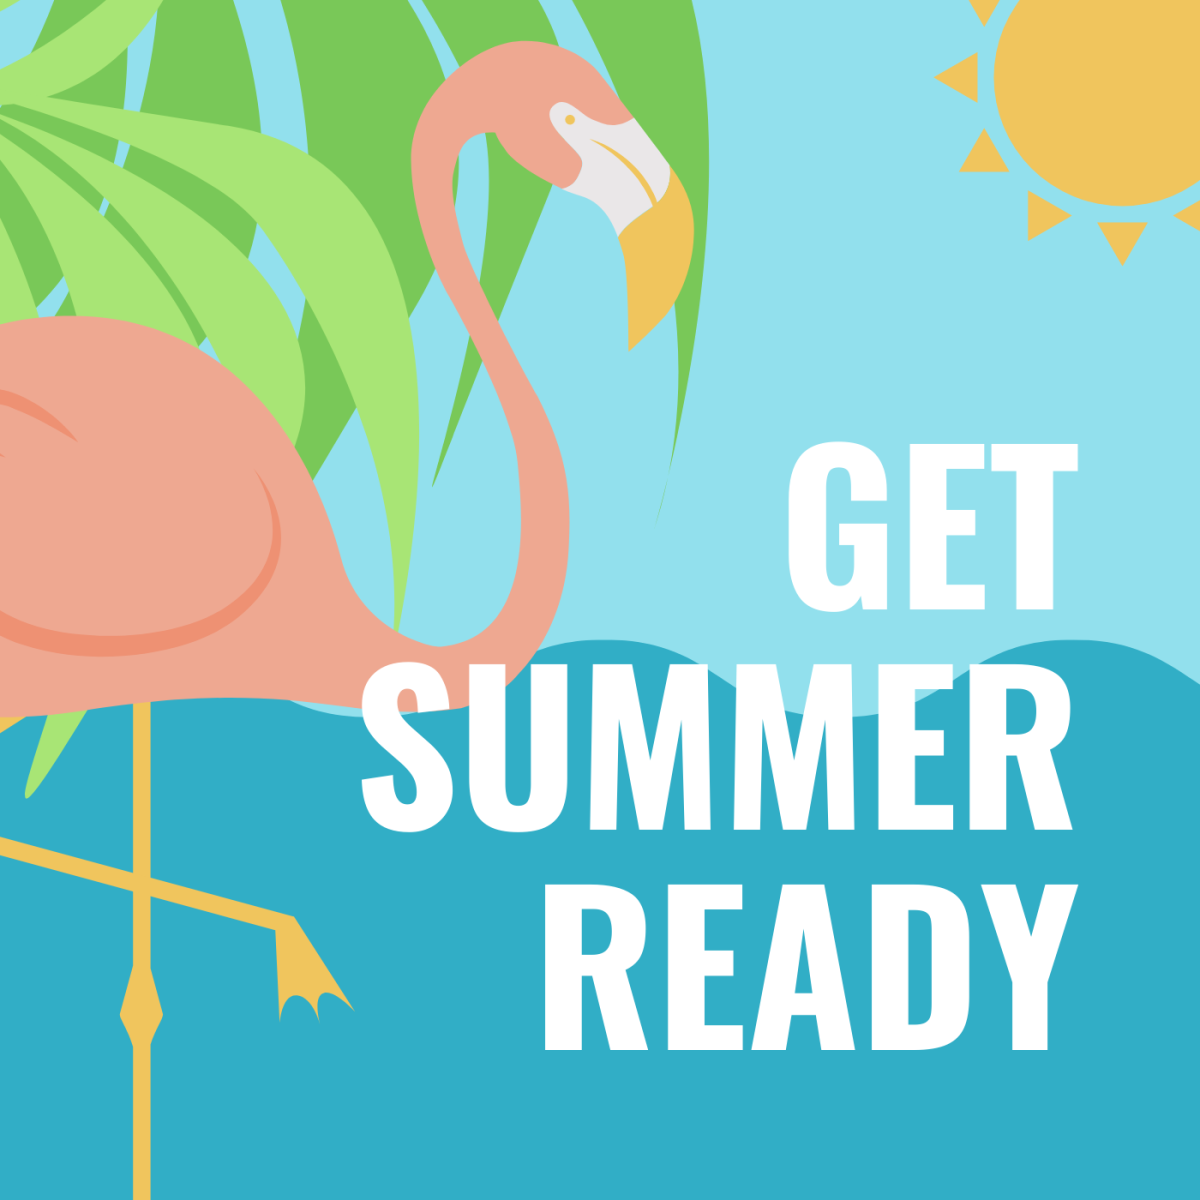 Use these 4 easy tips to get your pool sparkling and ready for summer.